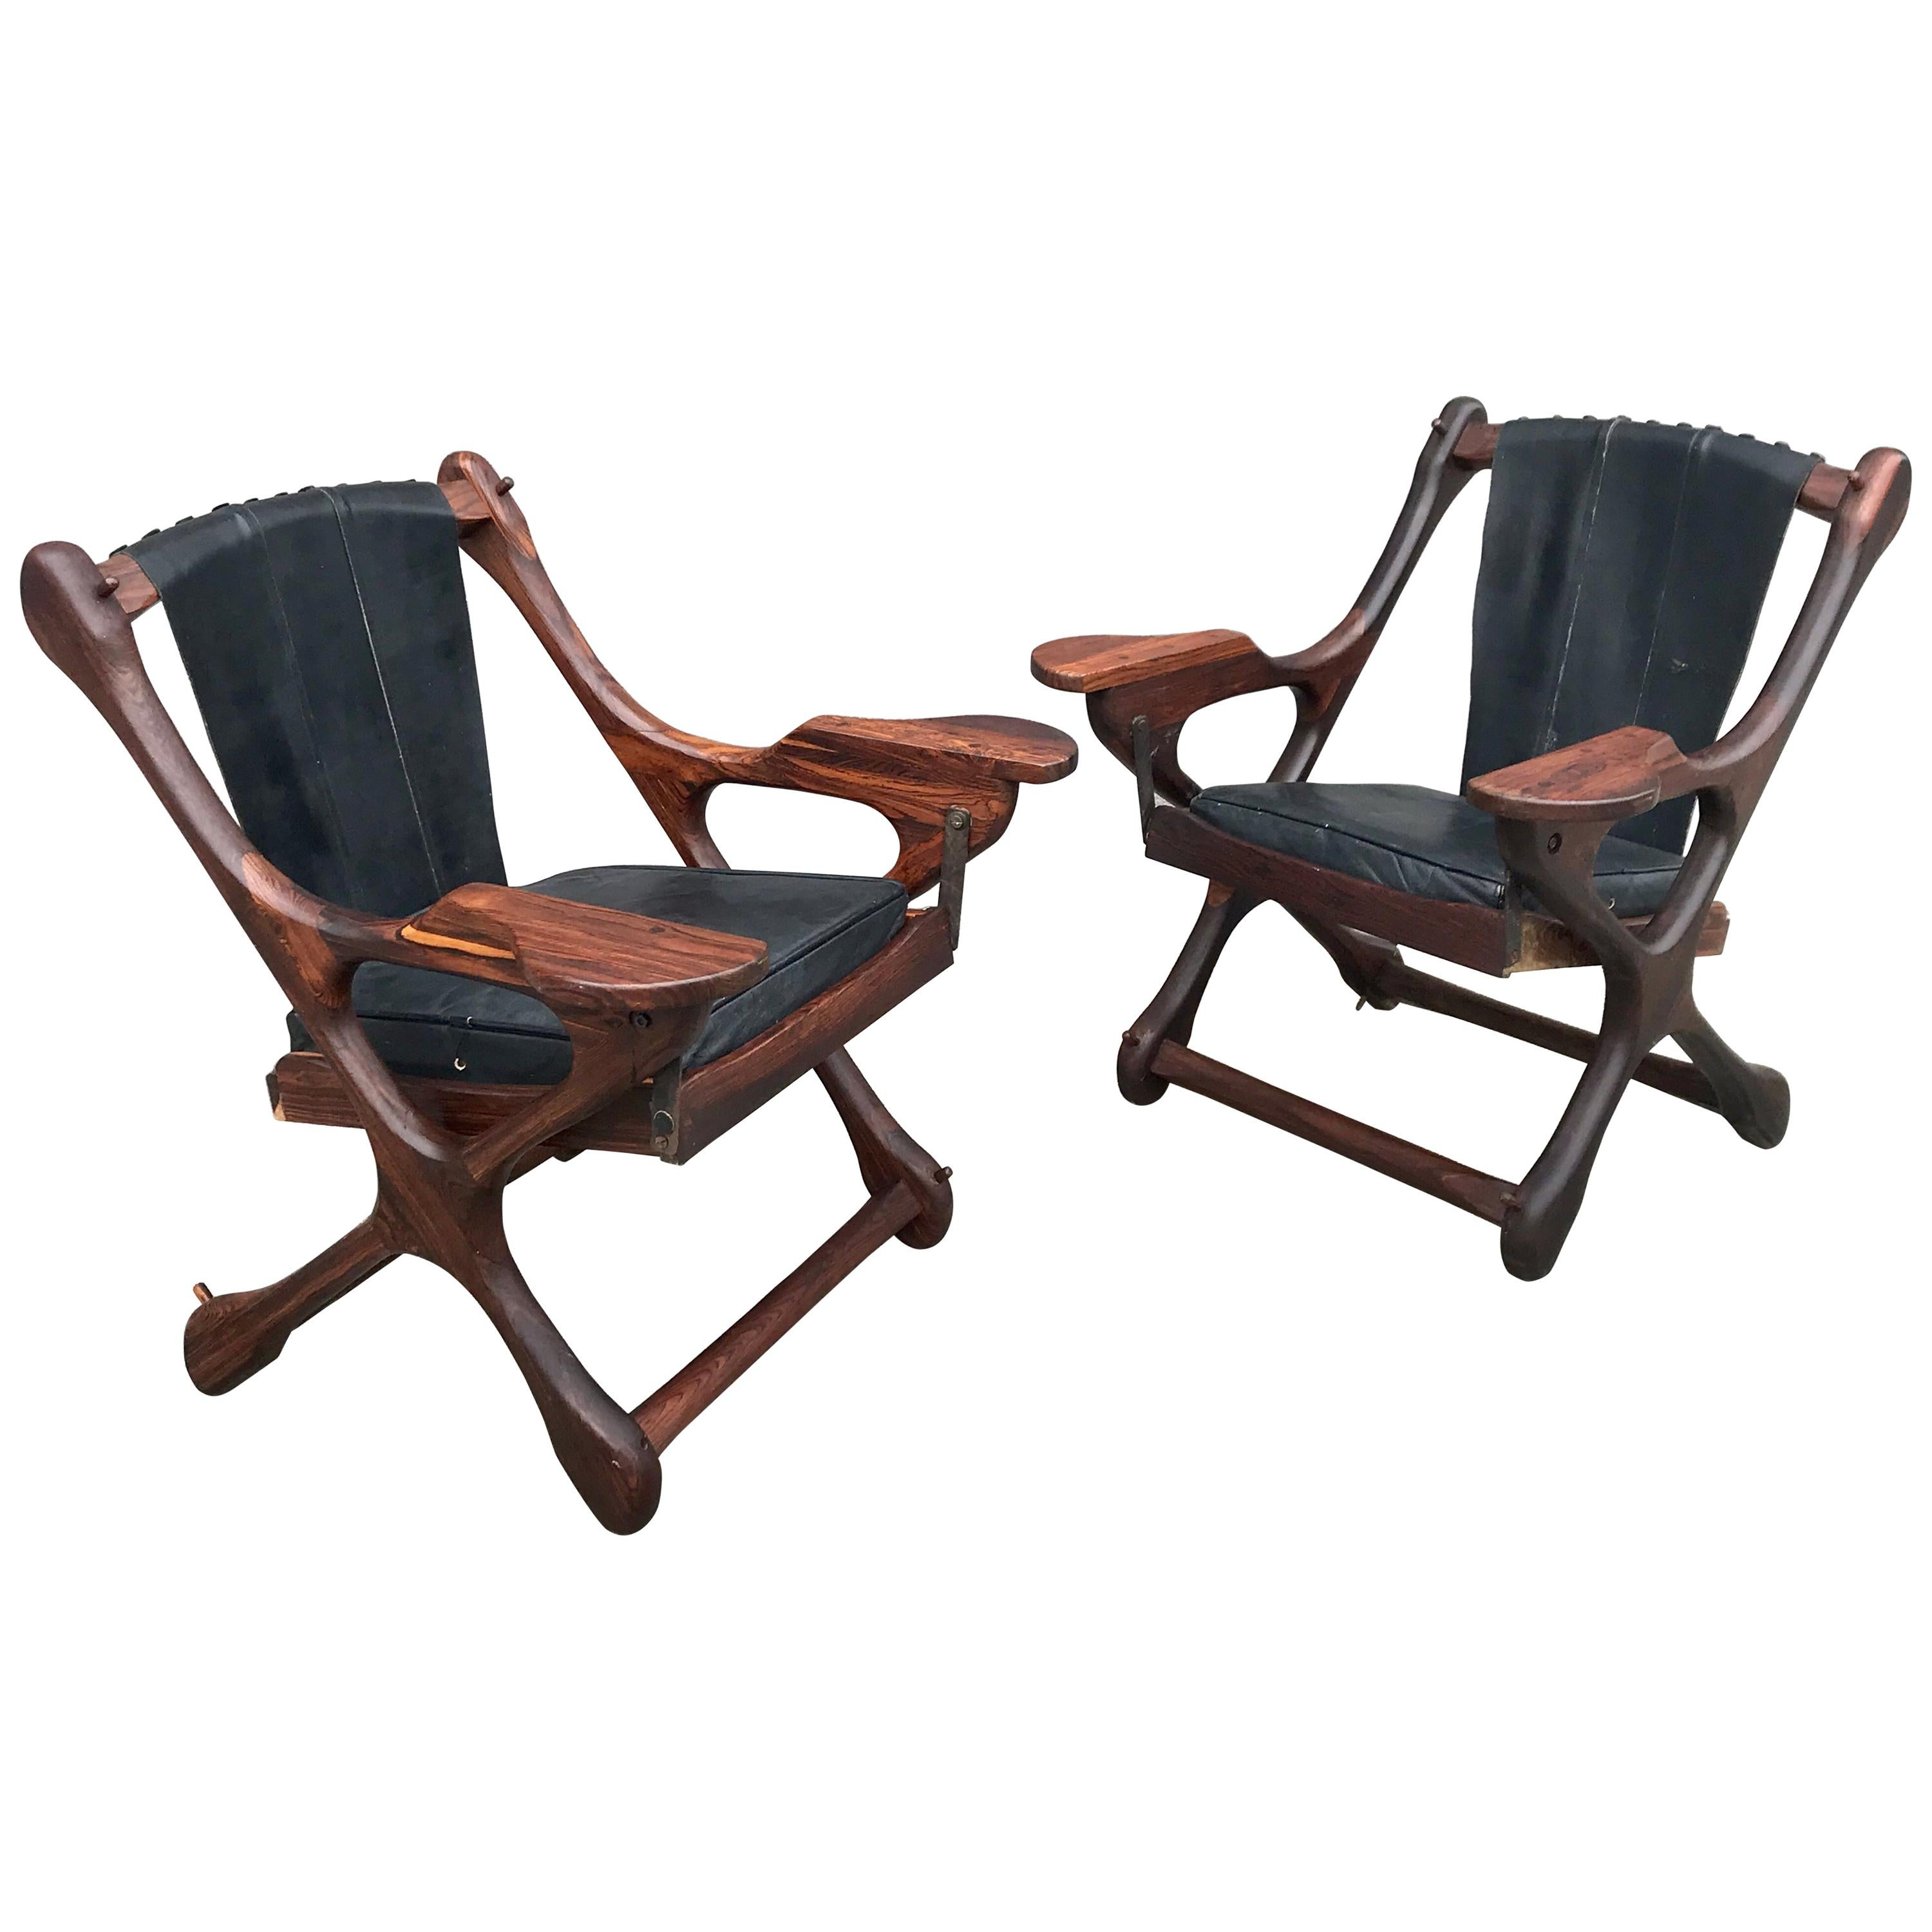 Don Shoemaker Leather and Wood 'Swing' Chairs, 20th Century